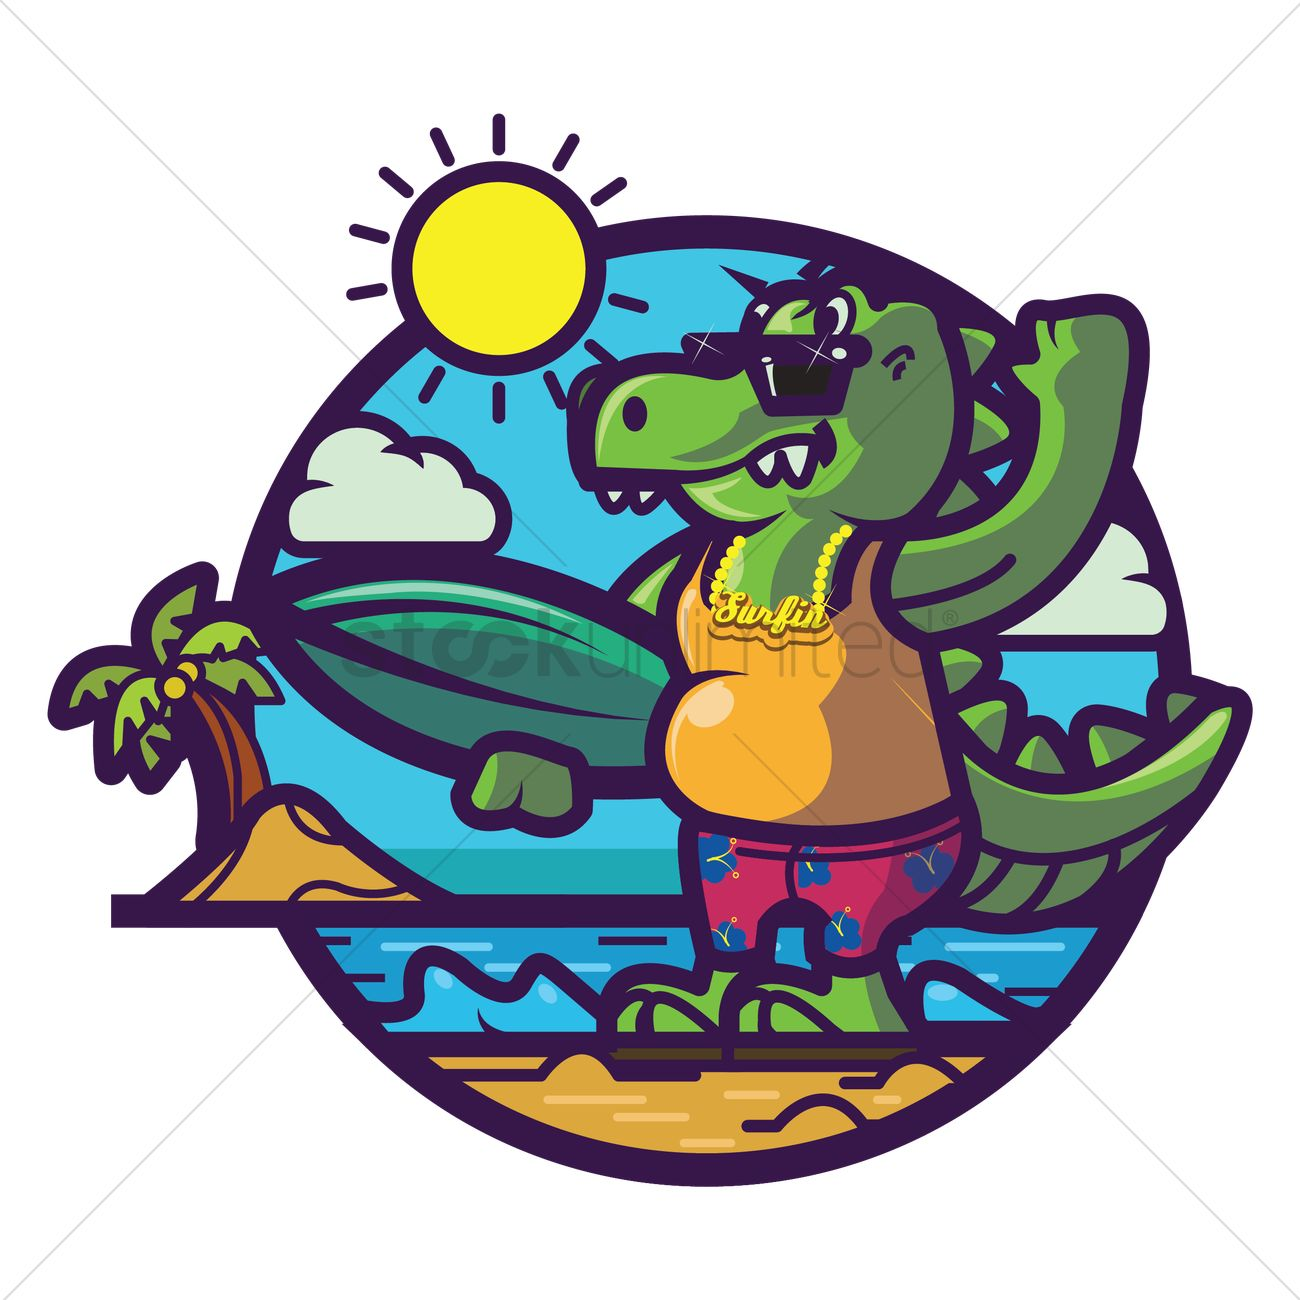 Crocodile chilling at beach Vector Image.